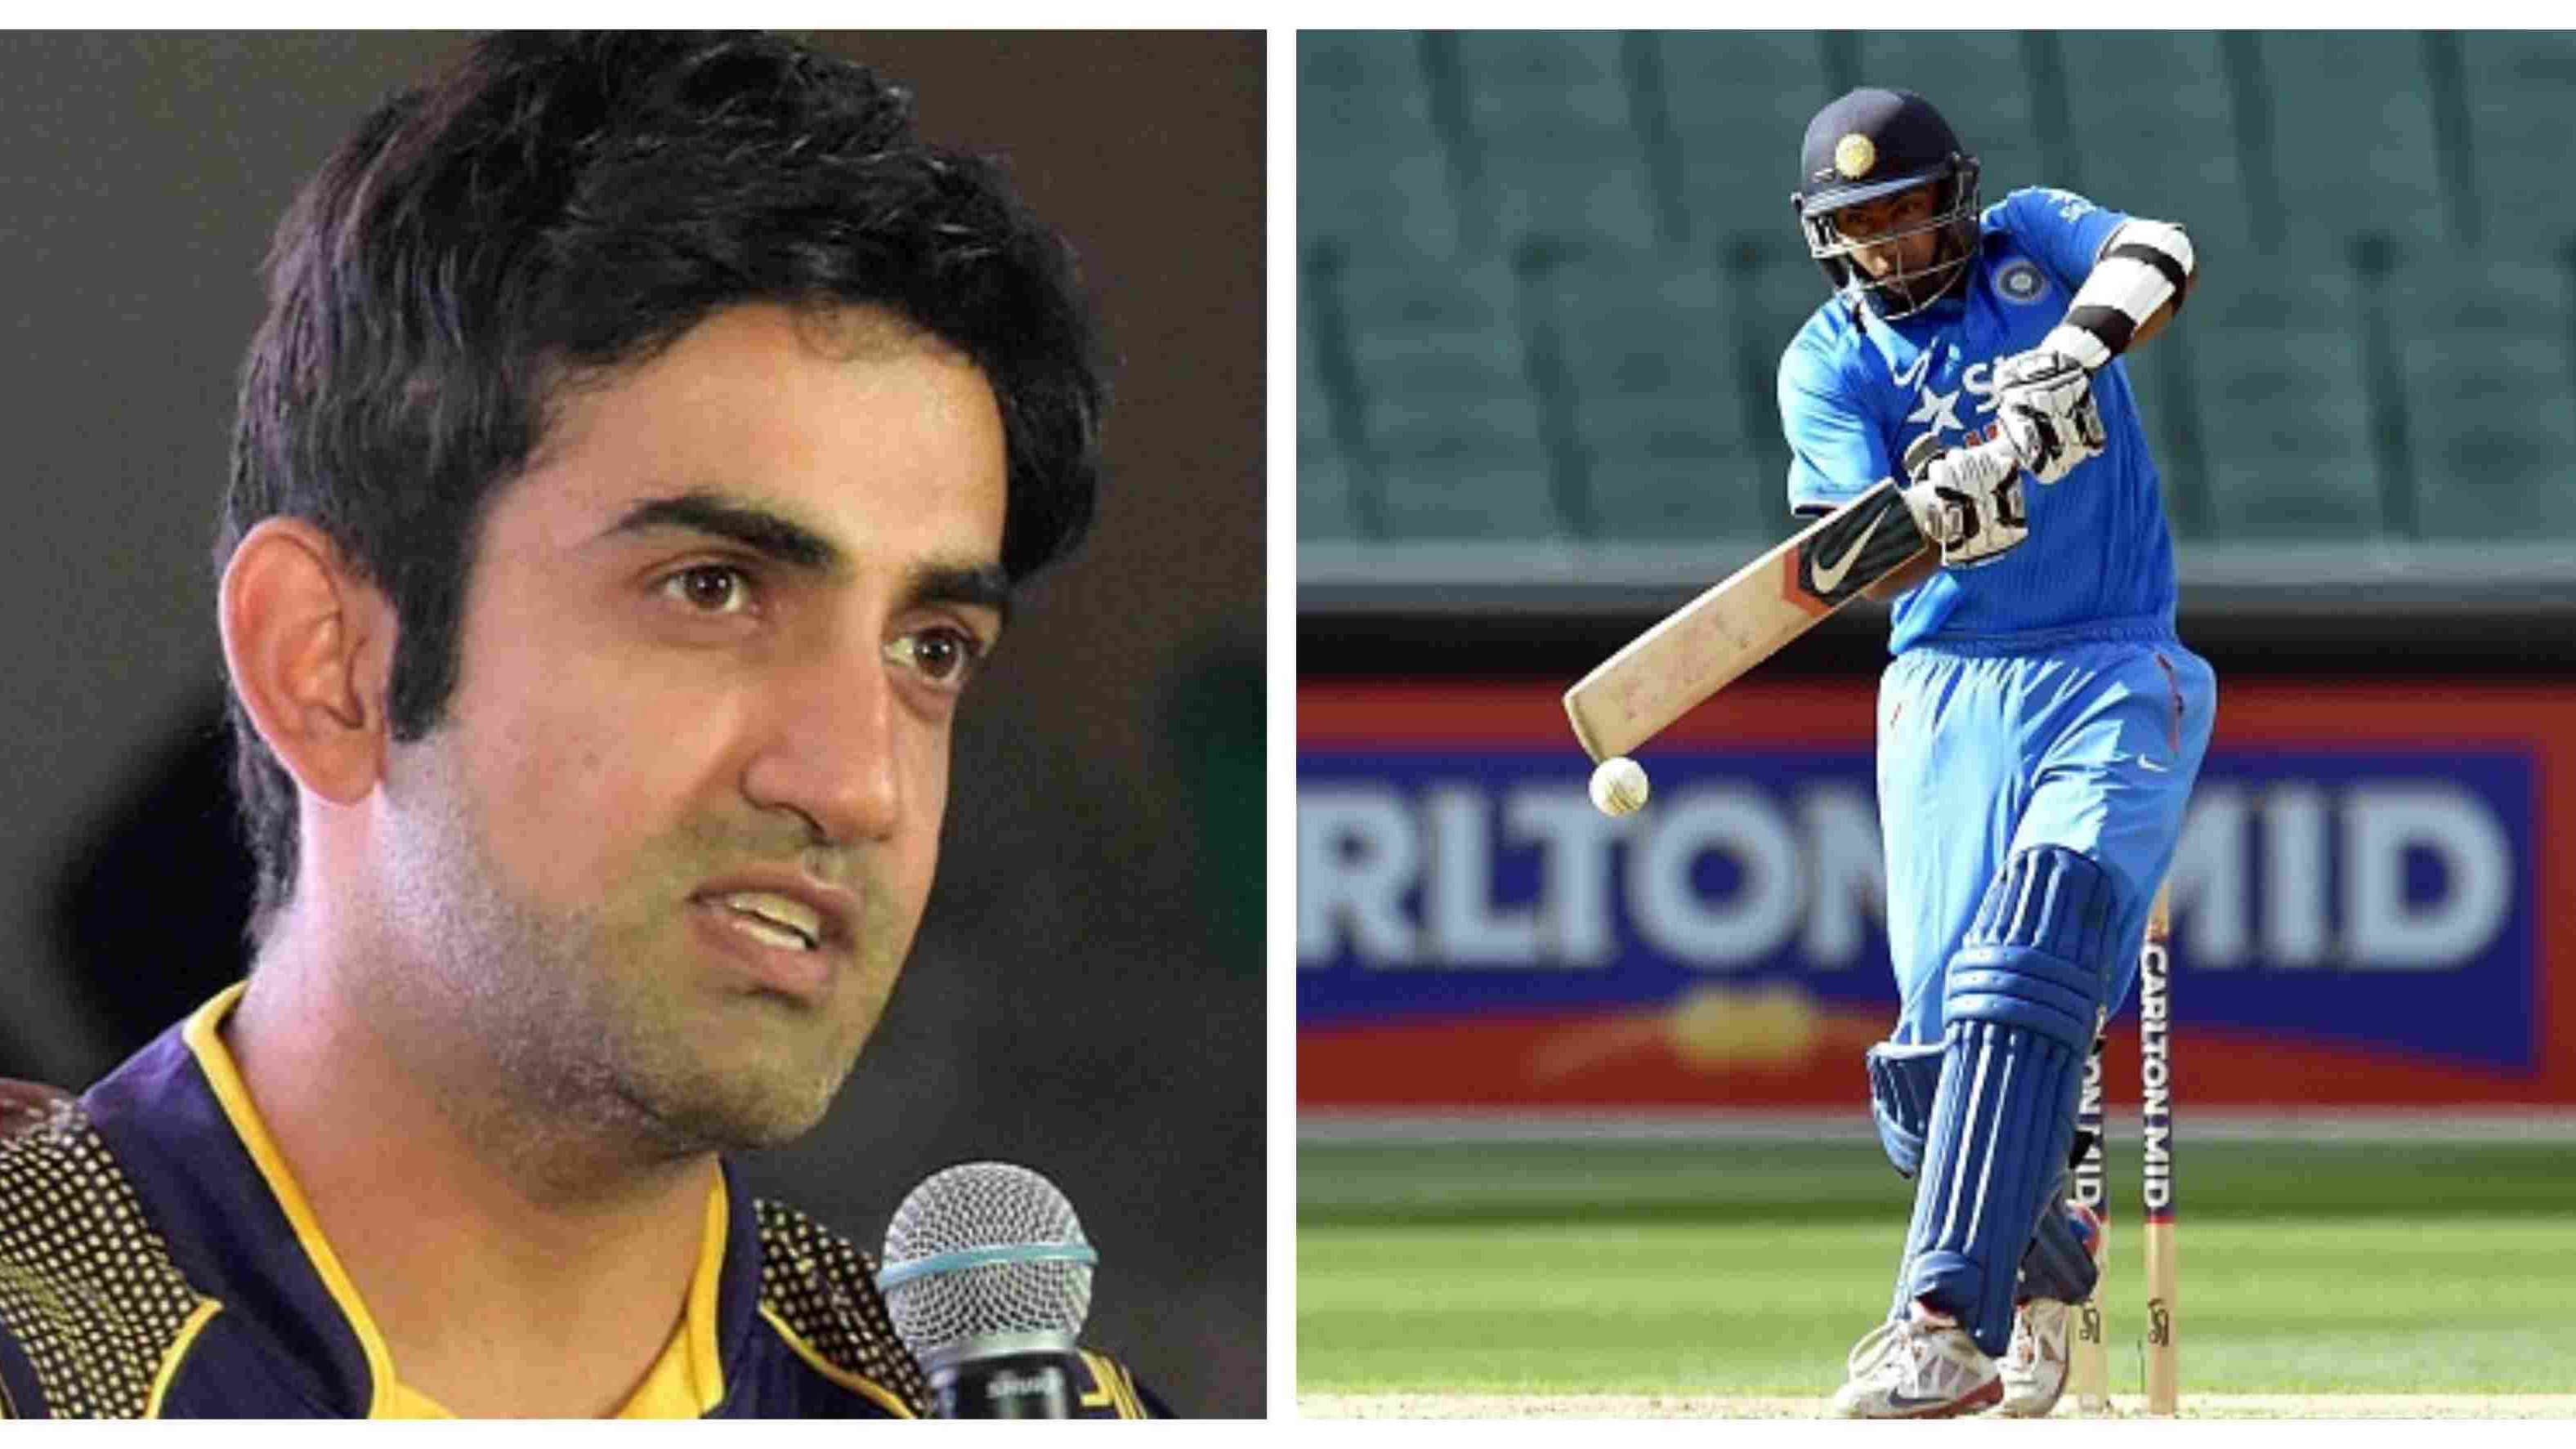 WATCH: Gautam Gambhir bats for R Ashwin's inclusion in ODI team as no. 4 batsman